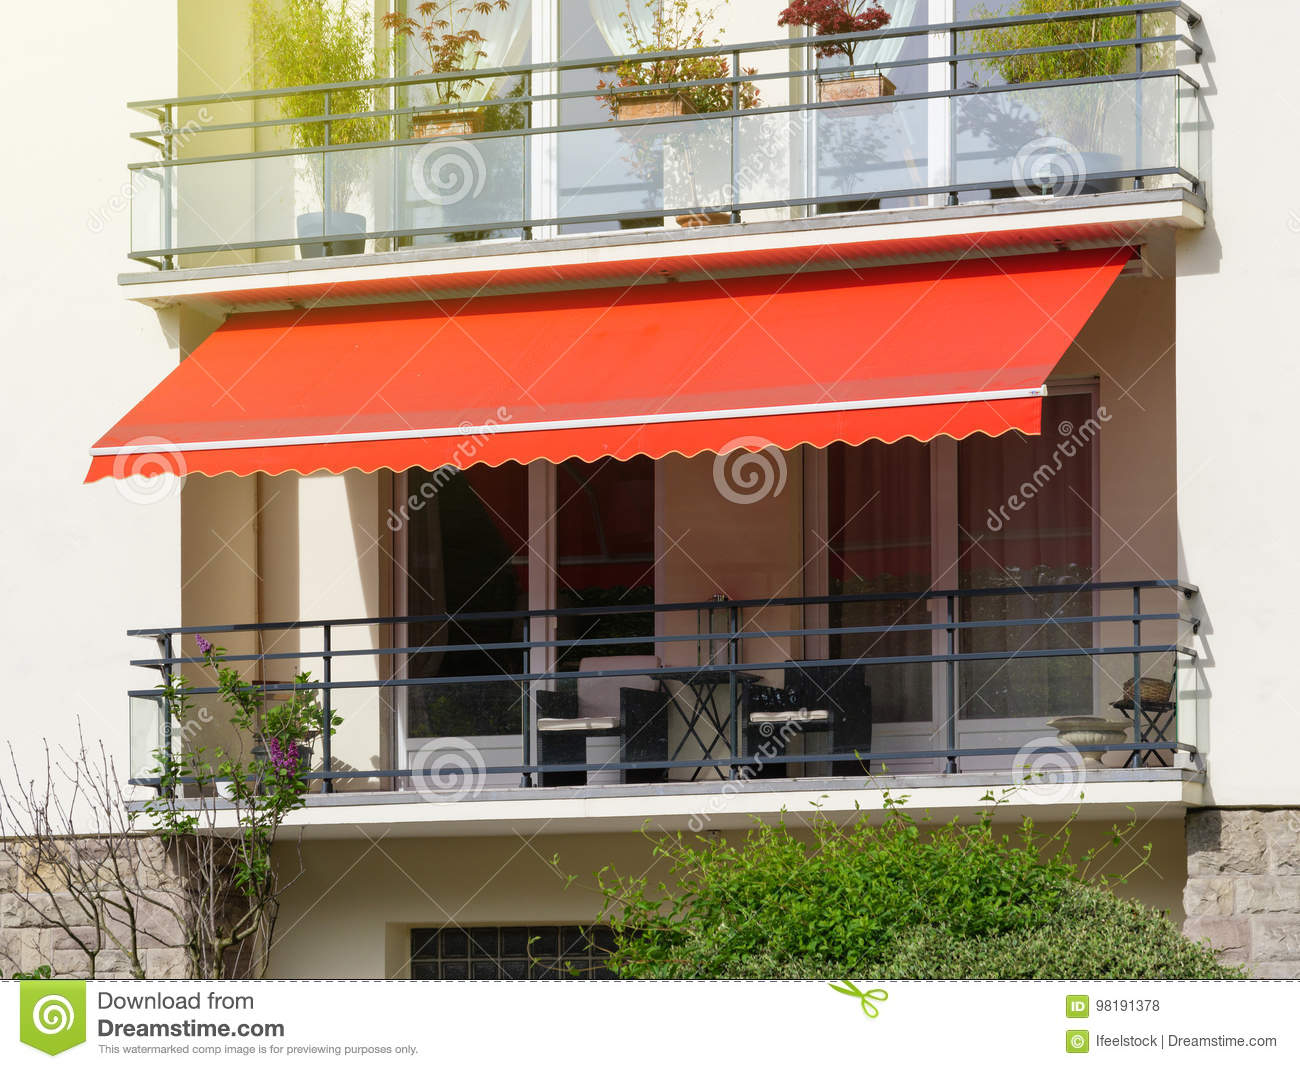 Awnings for sun protection